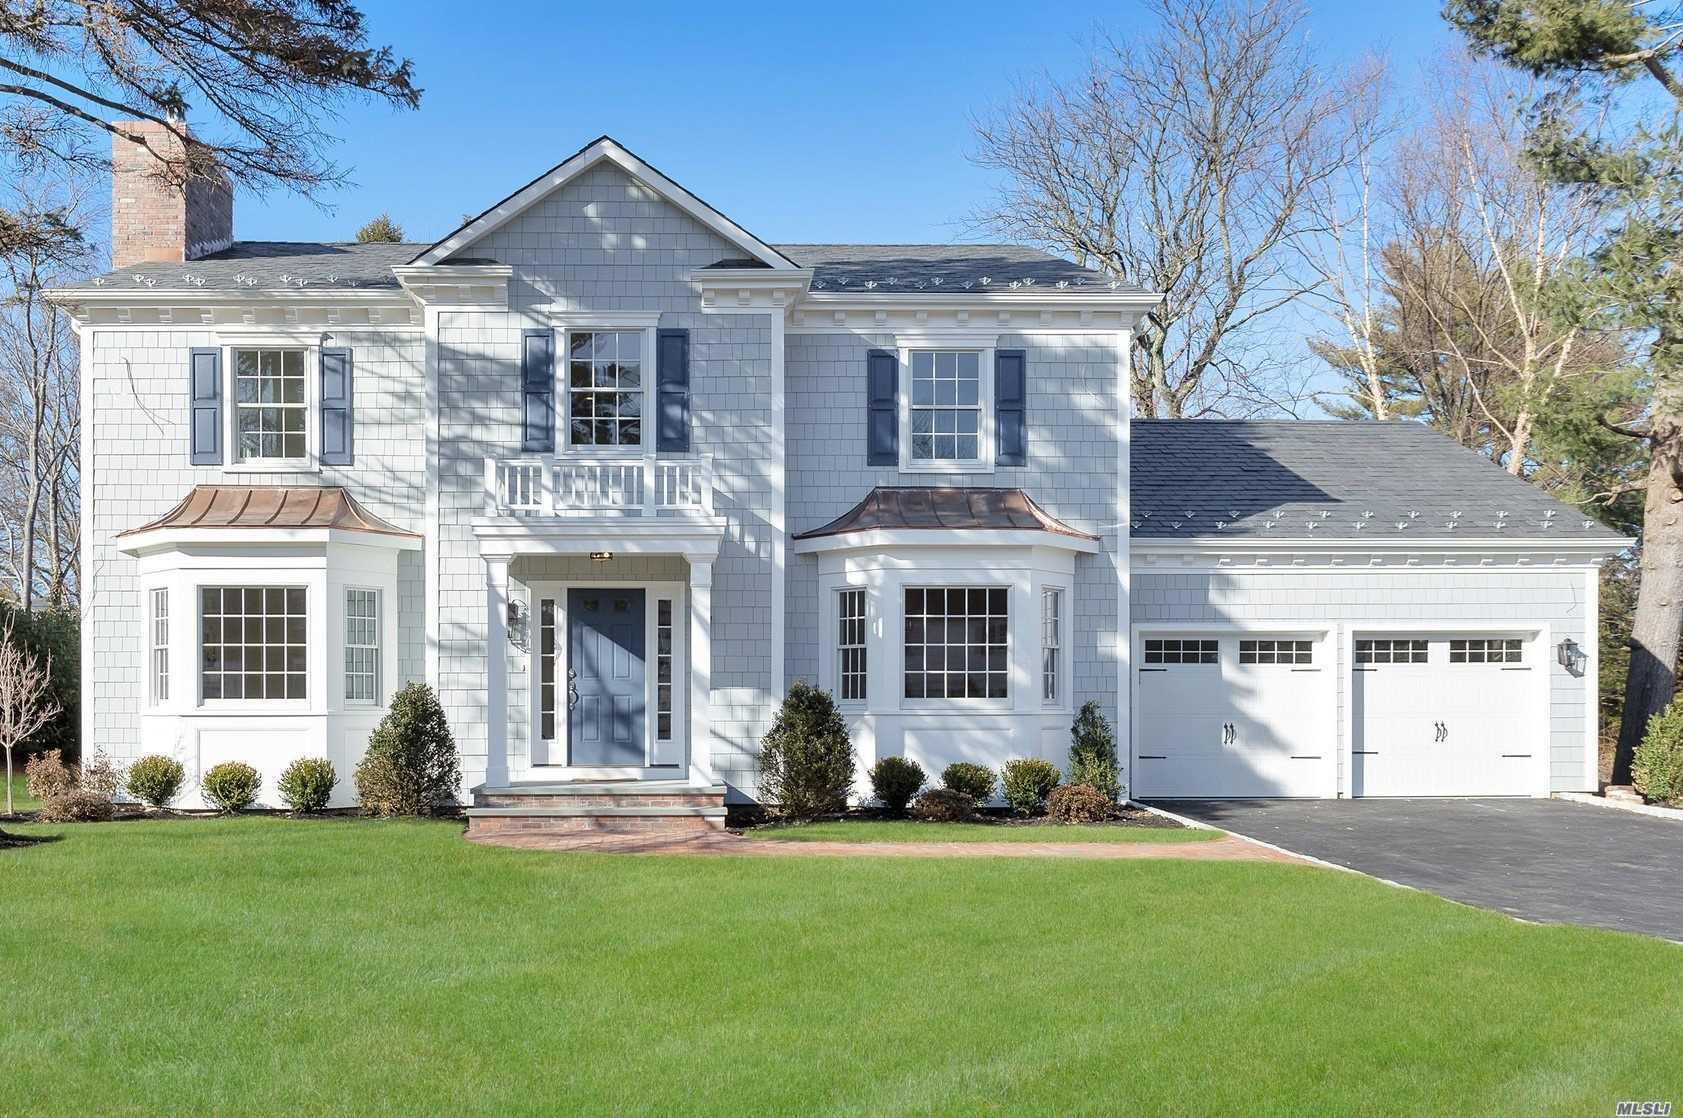 131 Trumbull Rd - Manhasset, New York